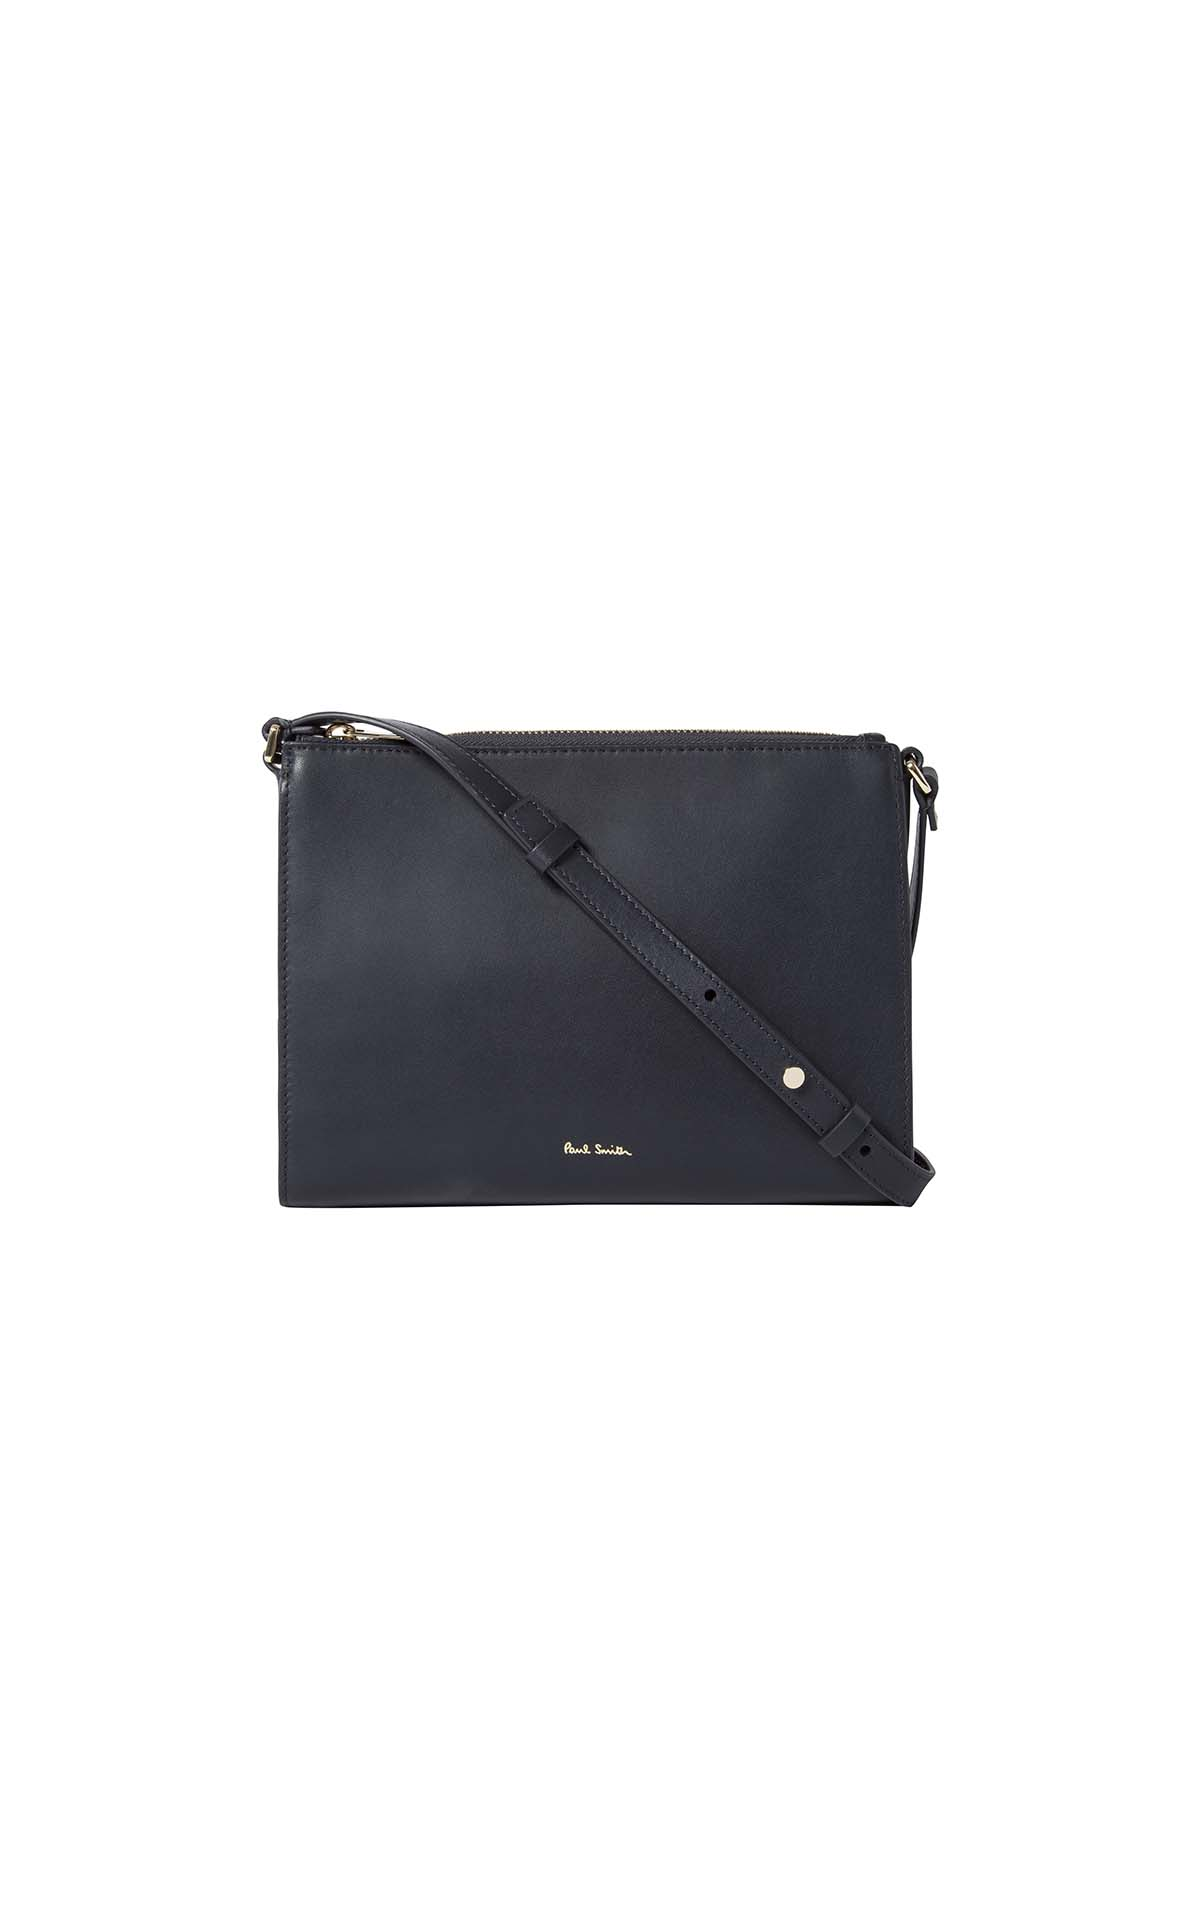 Paul Smith Women's Navy Cross Body Bag at The Bicester Village Shopping Collection